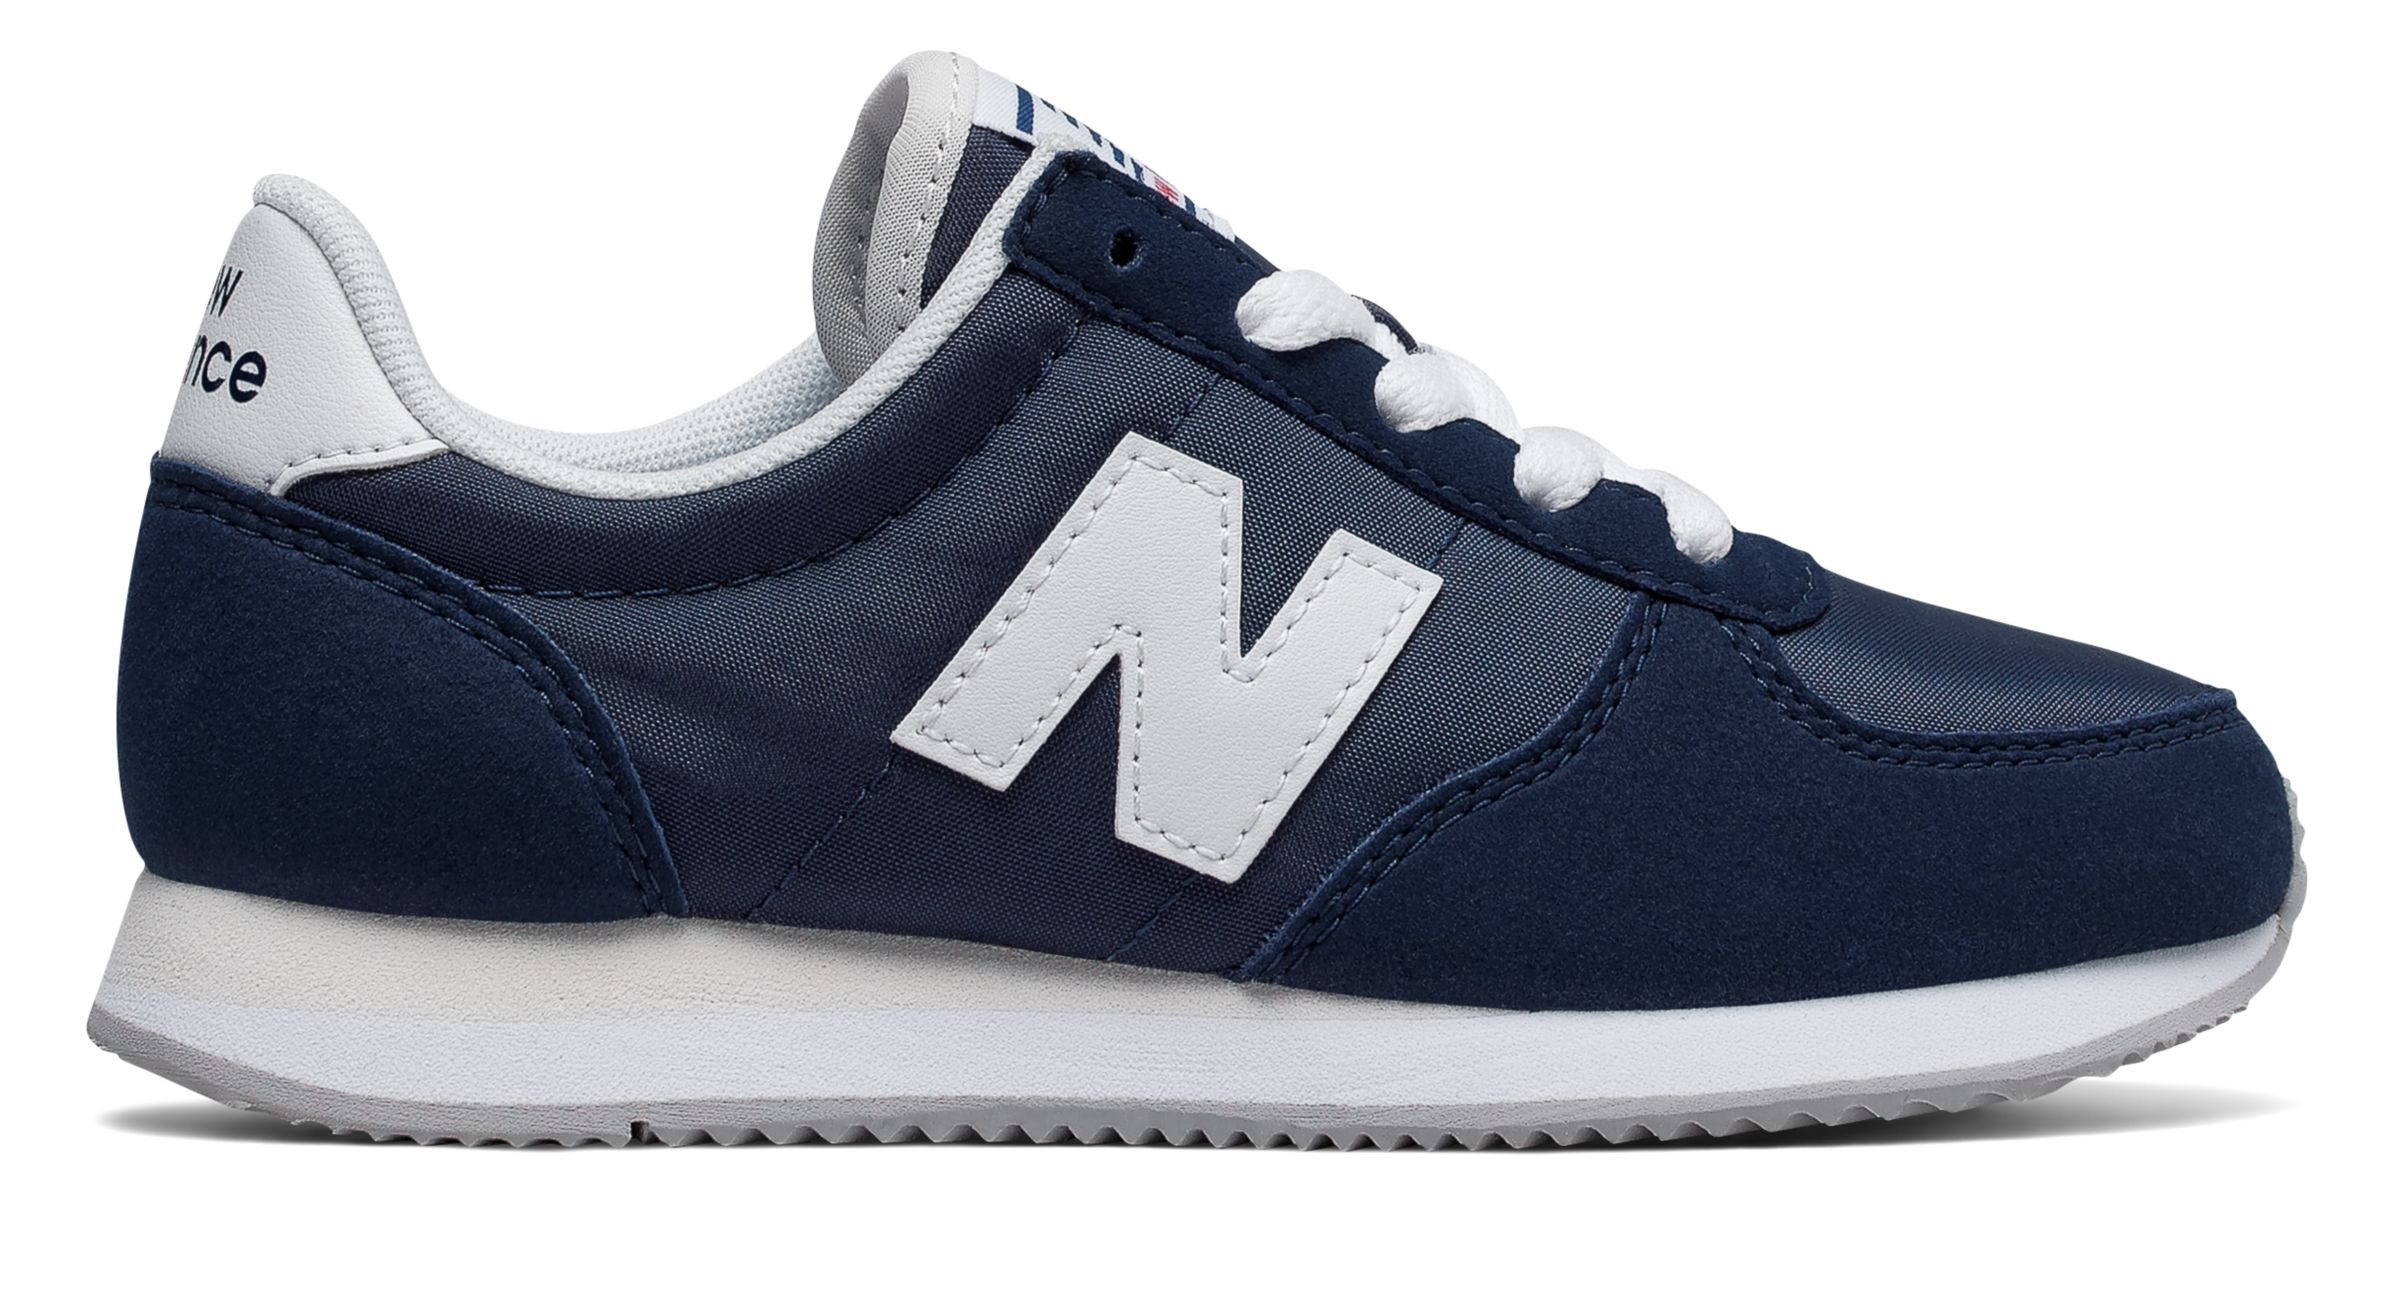 NB 220 New Balance, Navy with White